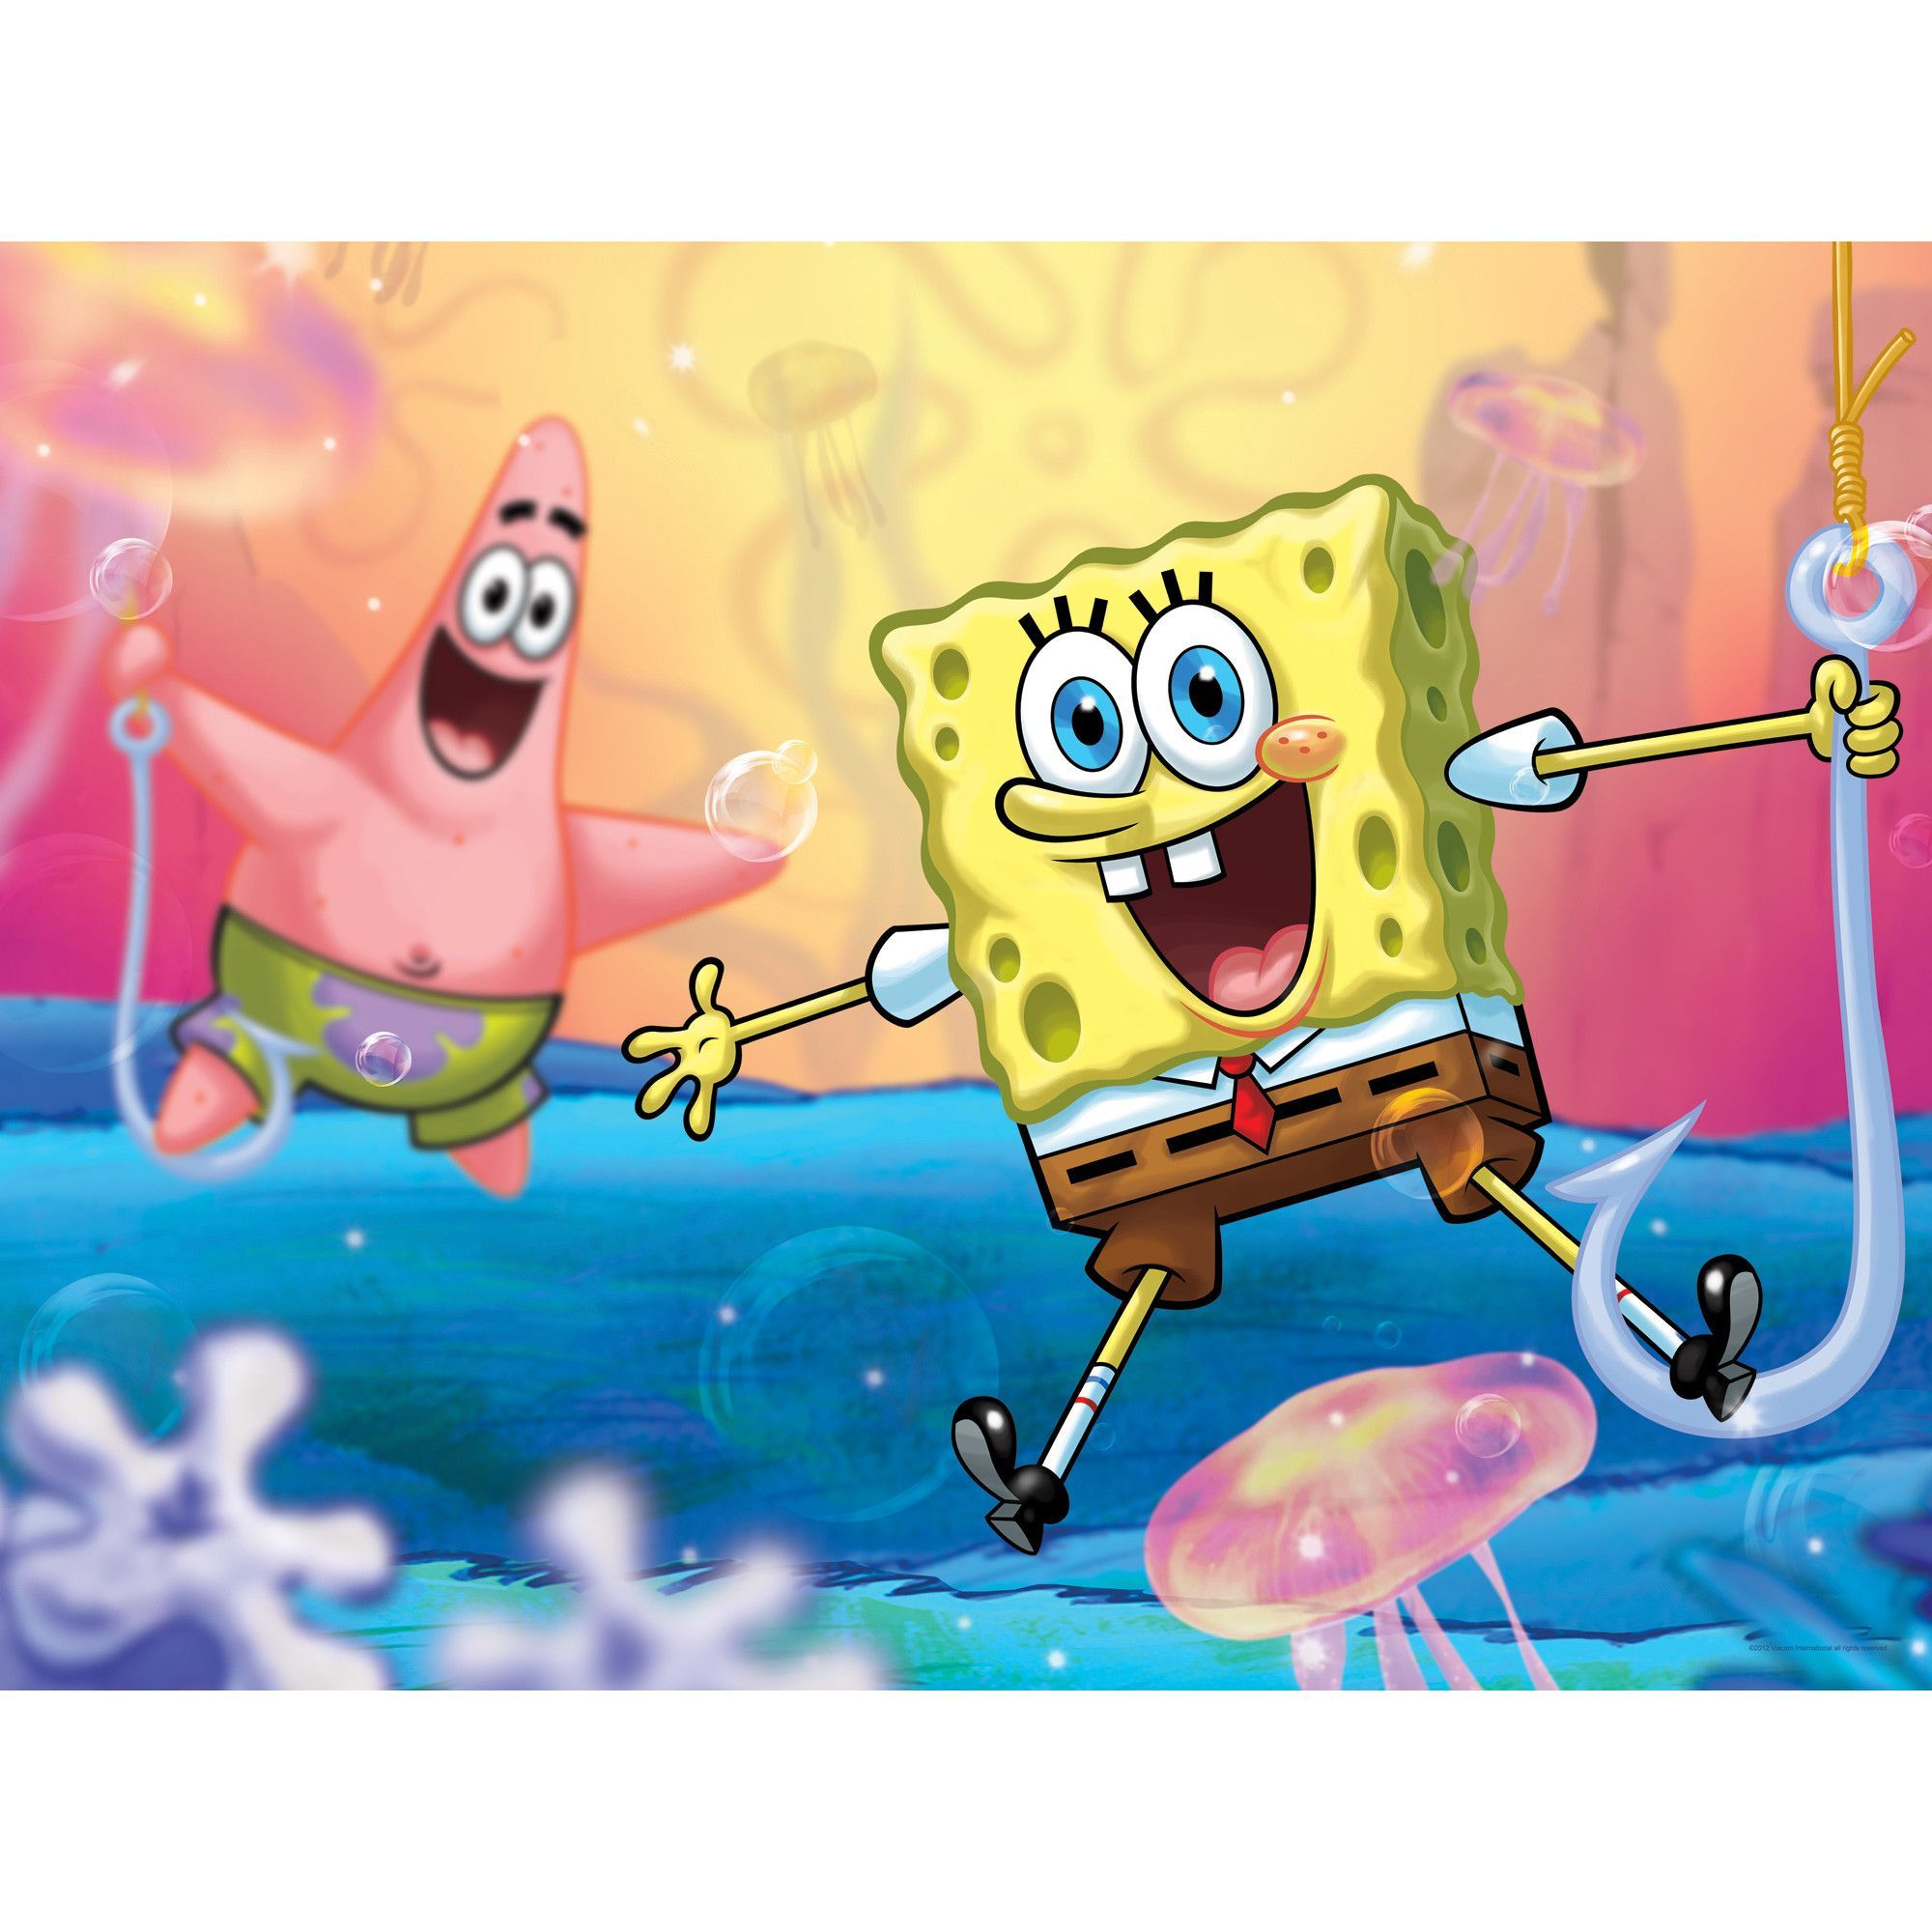 SpongeBob and Patrick Wall Art | Spongebob squarepants | Pinterest ...